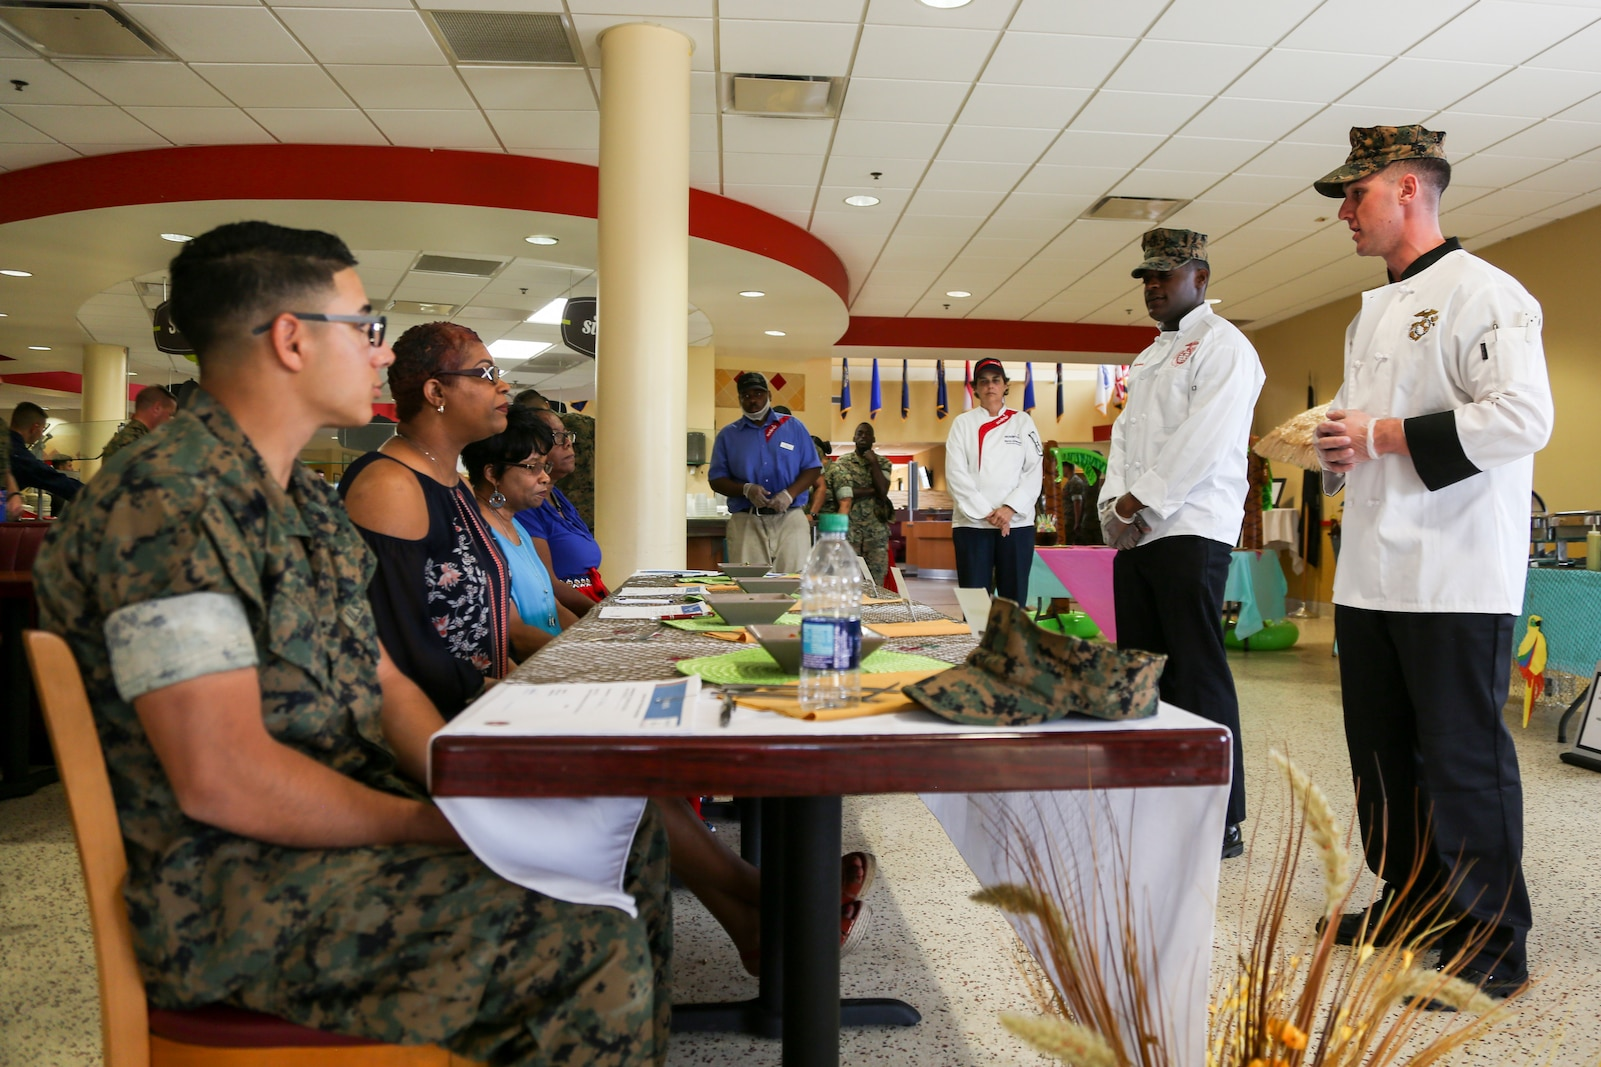 "Sgt. Stephen J. Van Hout, a Quality Assurance Evaluator with the Parris Island Mess Halls aboard Marine Corps Recruit Depot, South Carolina, presents a prepared meal for a panel of judges at Mess Hall 280 on Marine Corps Air Station Beaufort, S.C., May 2, 2019.  The food was prepared during a ""Chef of the Quarter"" event that includes mess halls from MCAS Beaufort and Parris Island competing against one another for the top spot. Parris Island Mess Hall placed first and won the People's Choice award. (U.S. Marine Corps photo by Cpl. Andrew Neumann)"